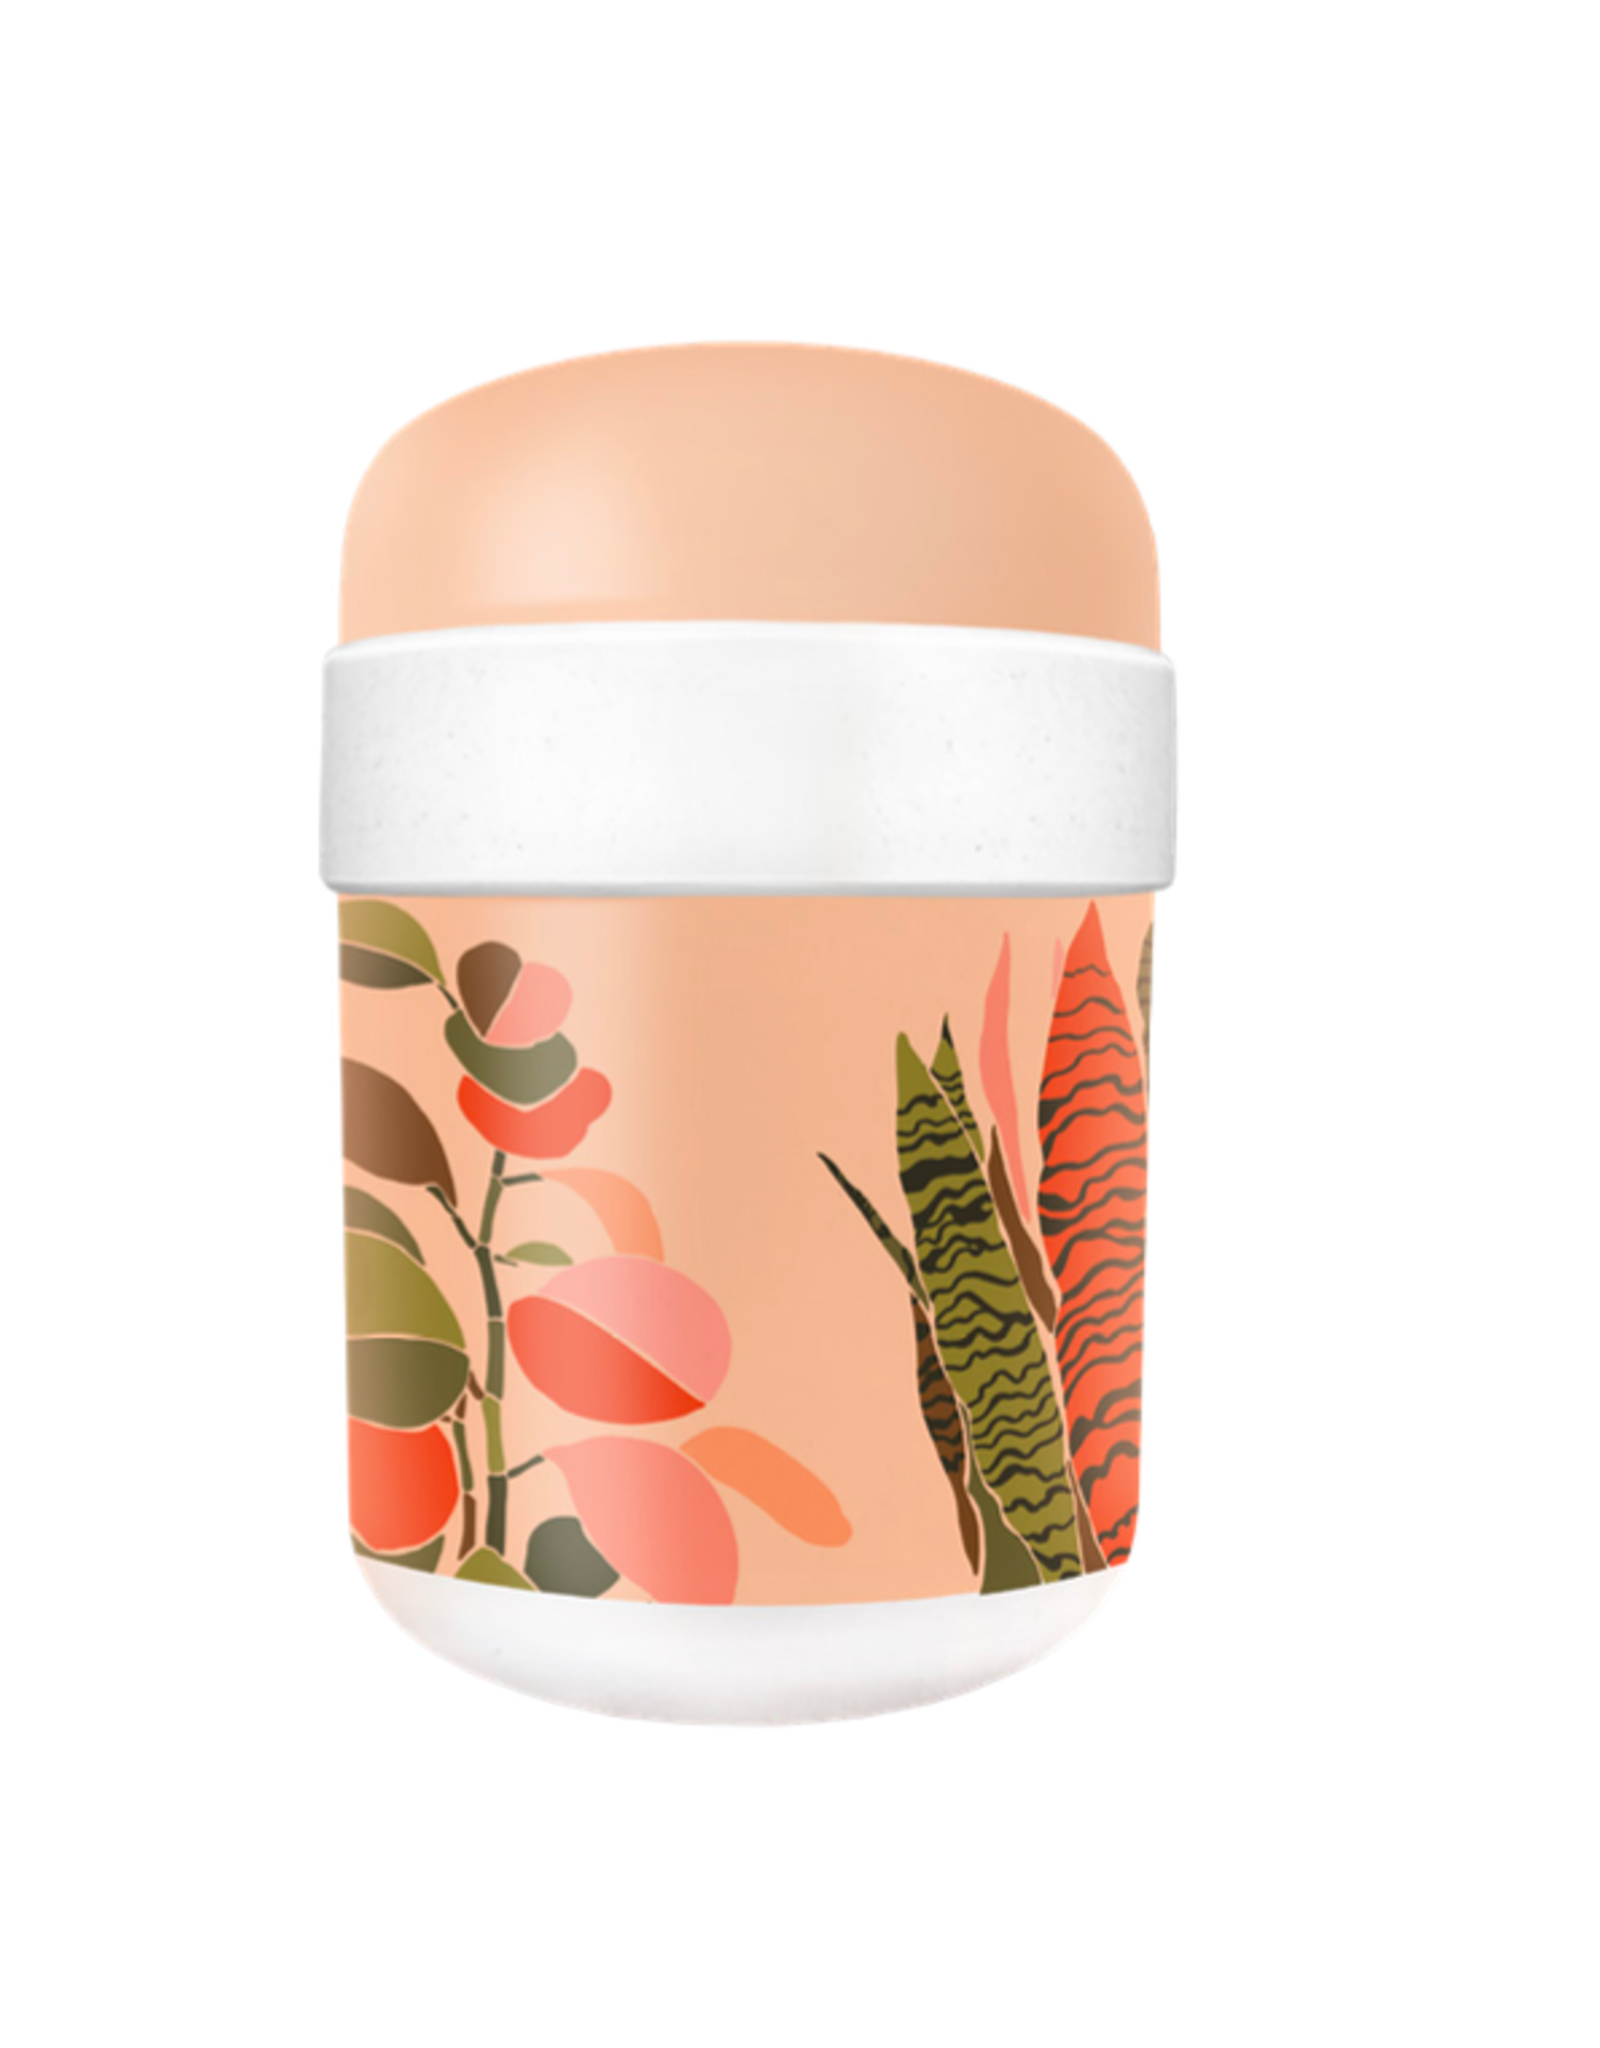 lunchpot with colorful leaves print